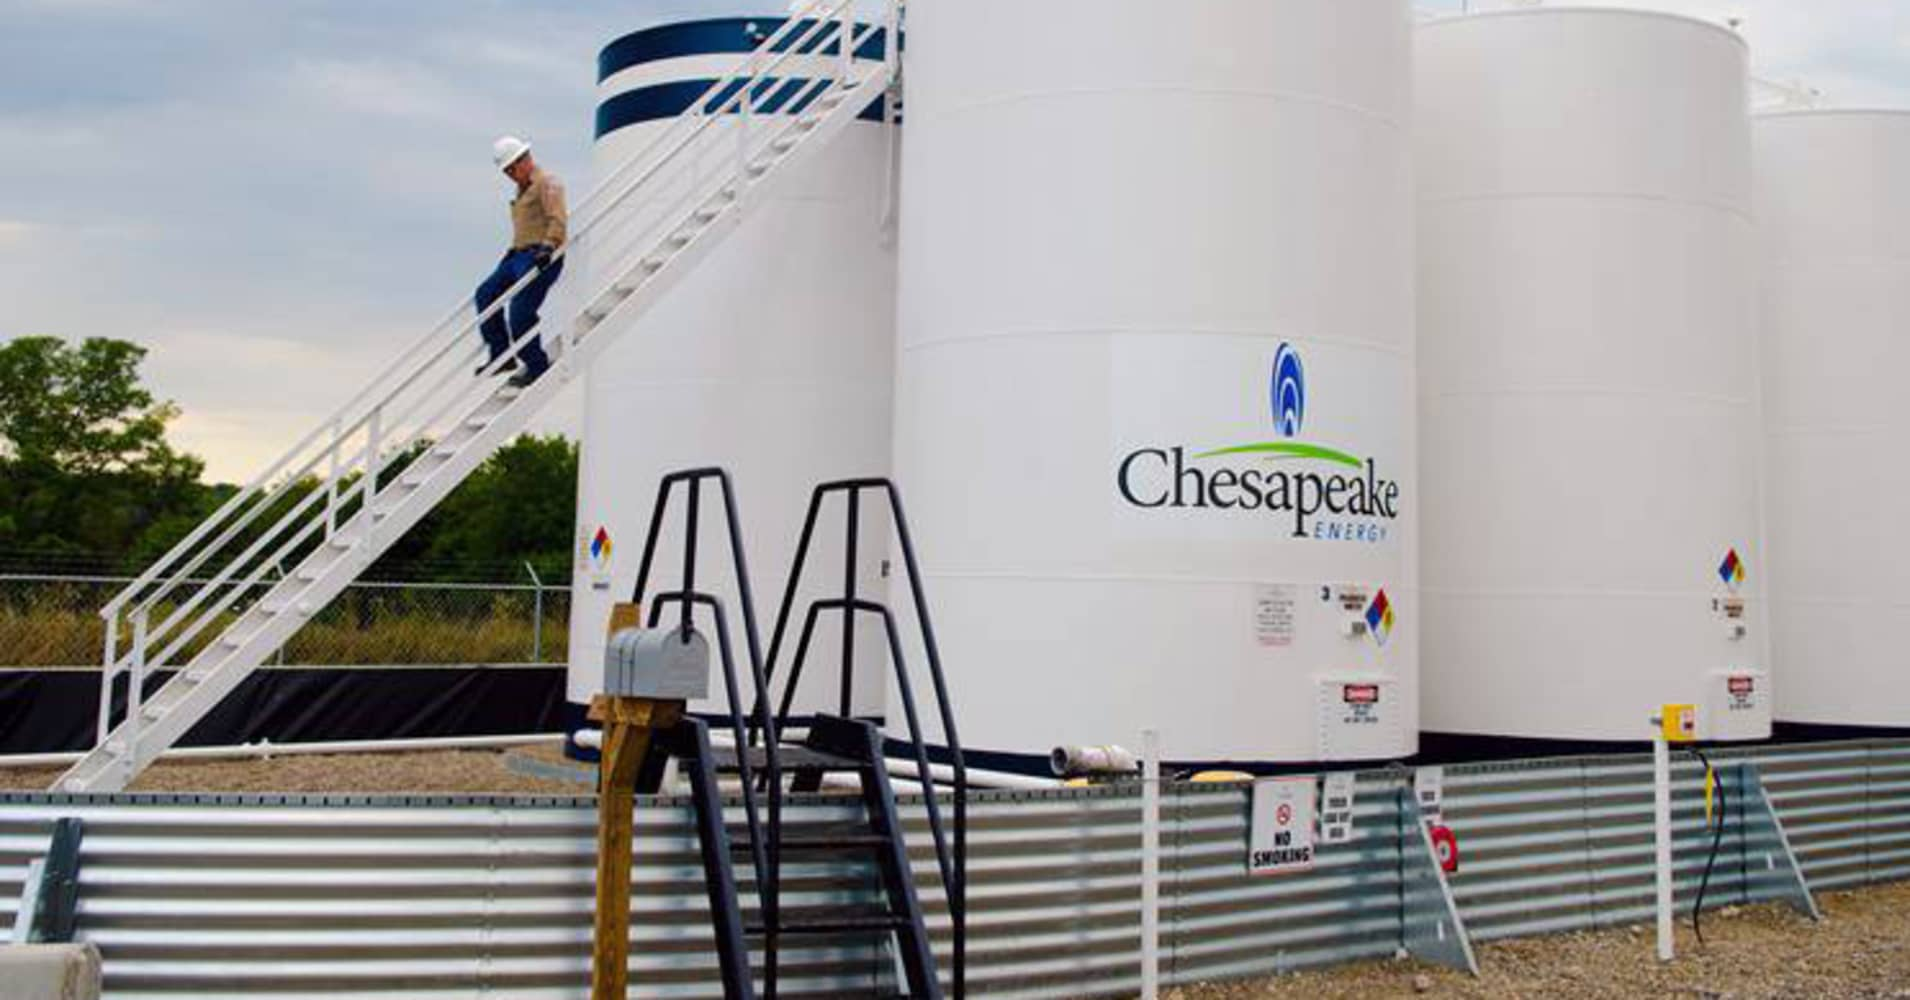 Chesapeake Energy takes $1bn loan